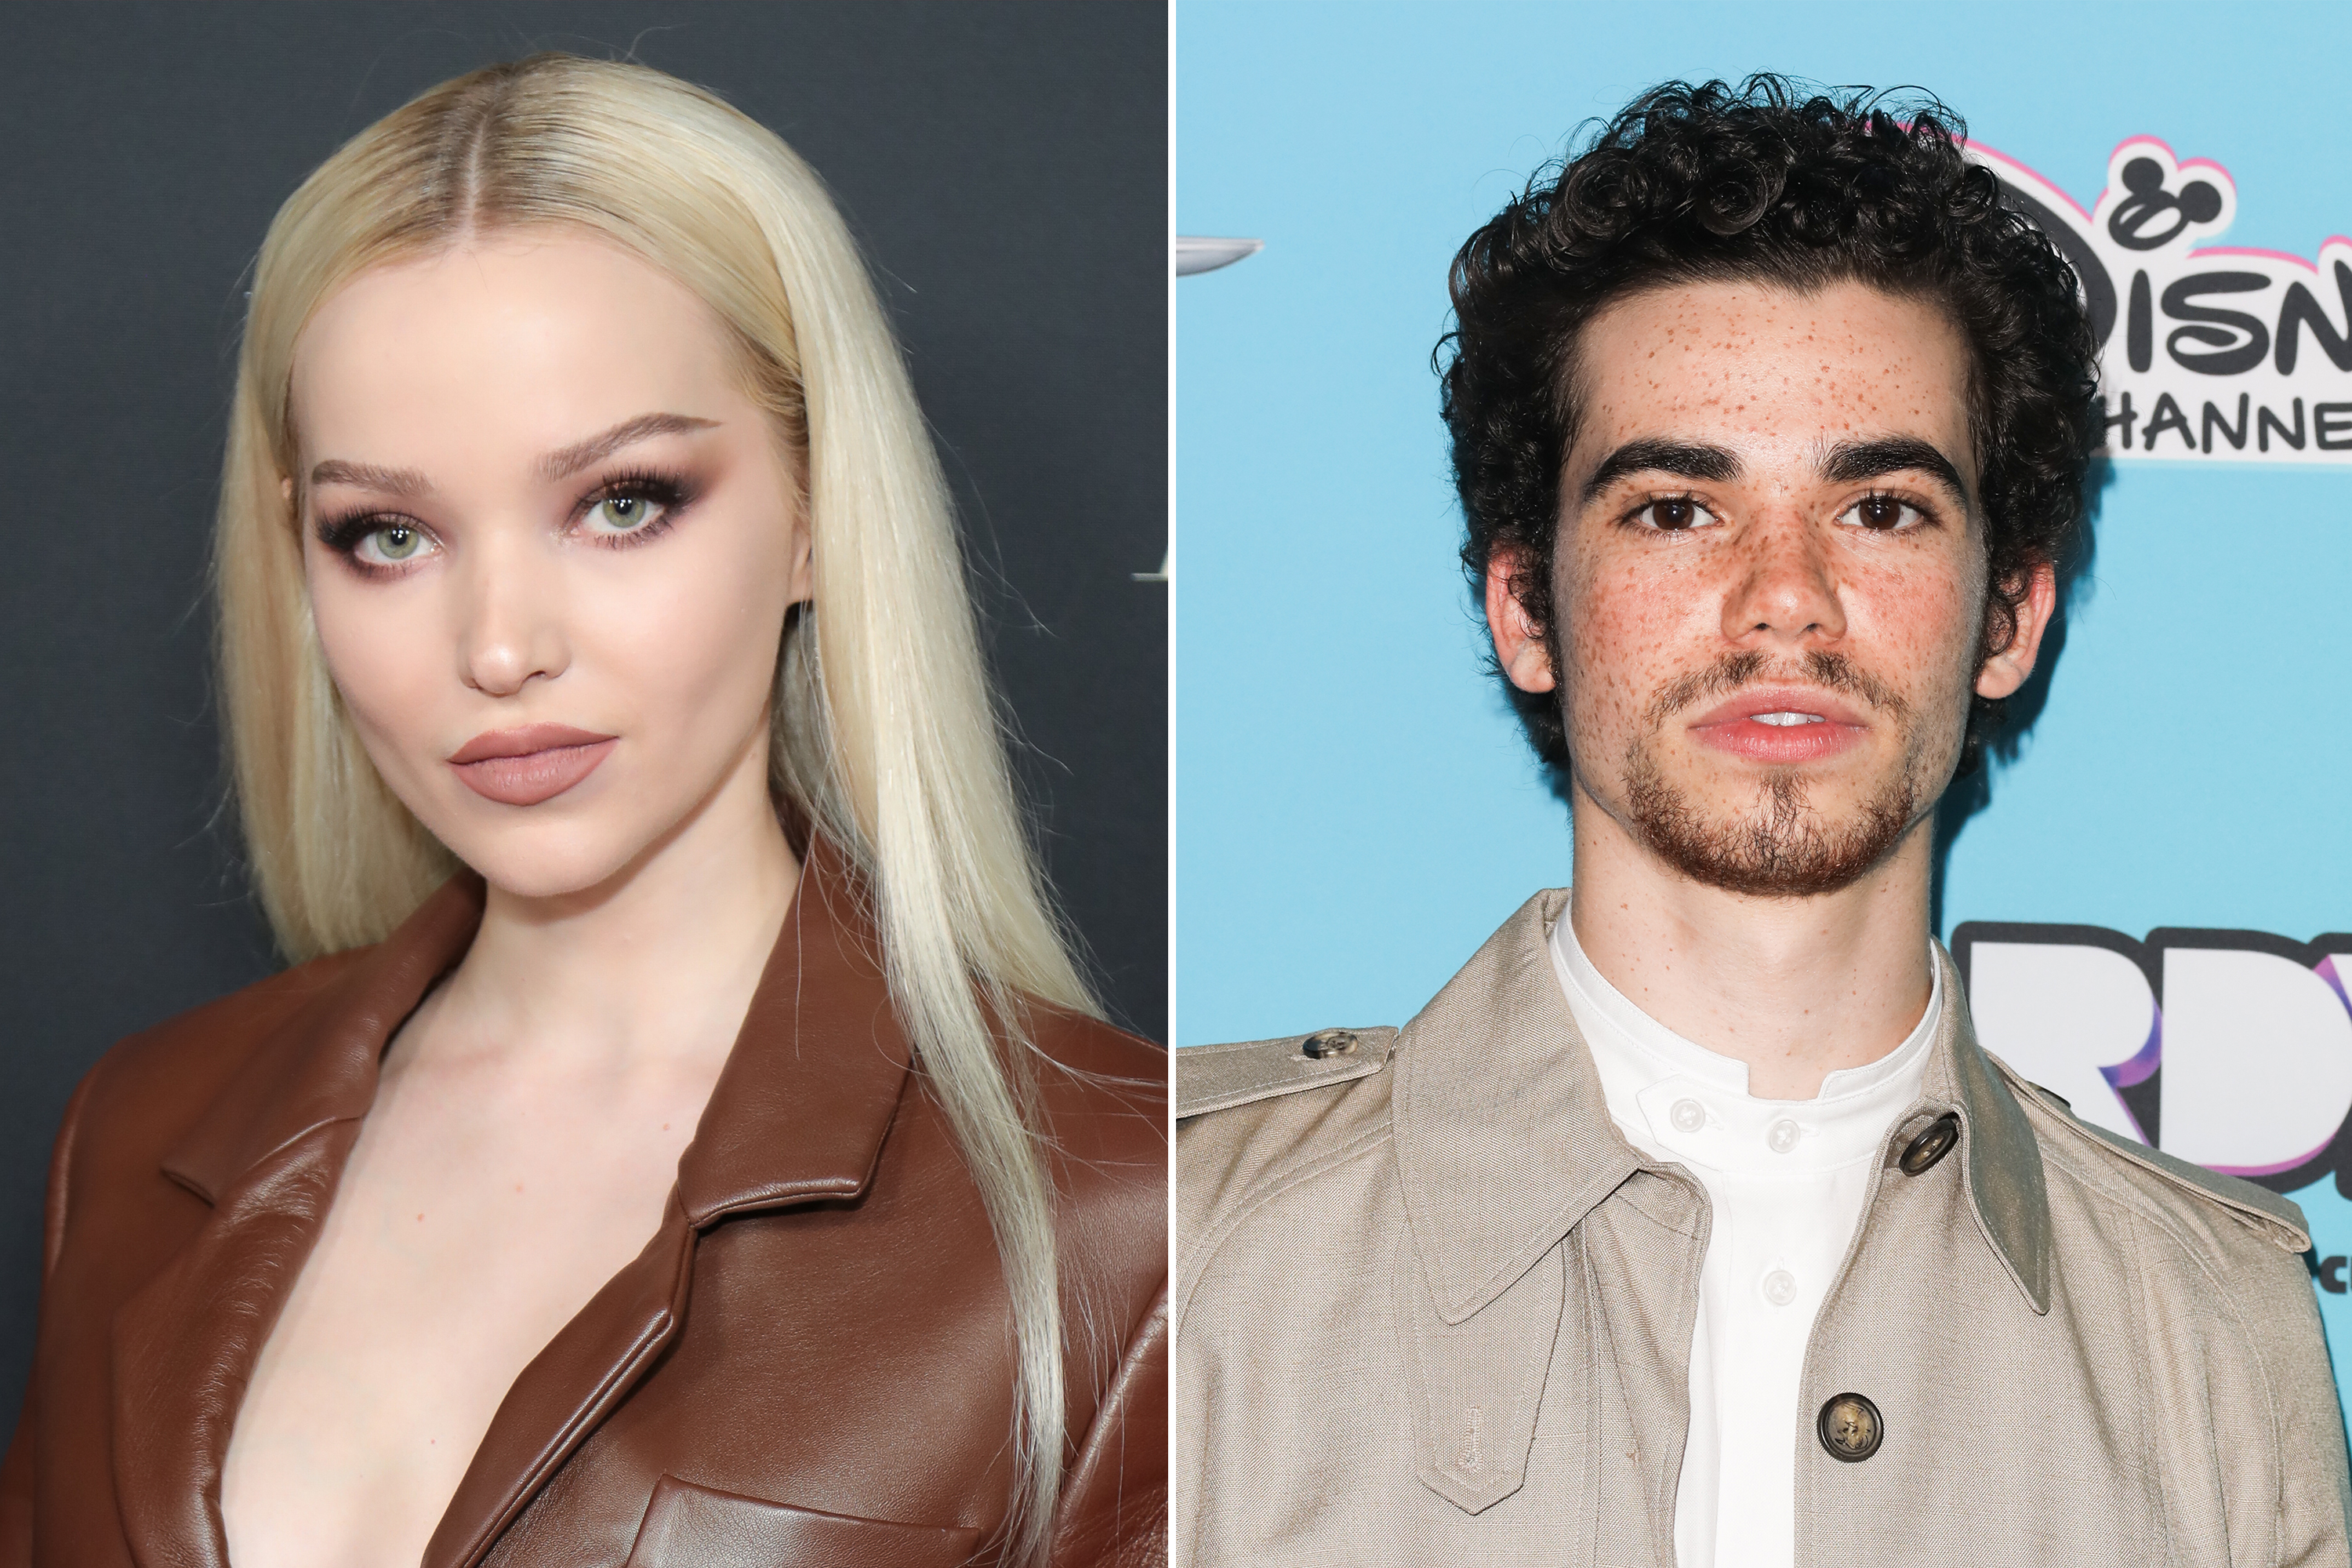 Dove Cameron Gets Anti Gun Tattoo In Honor Of Cameron Boyce